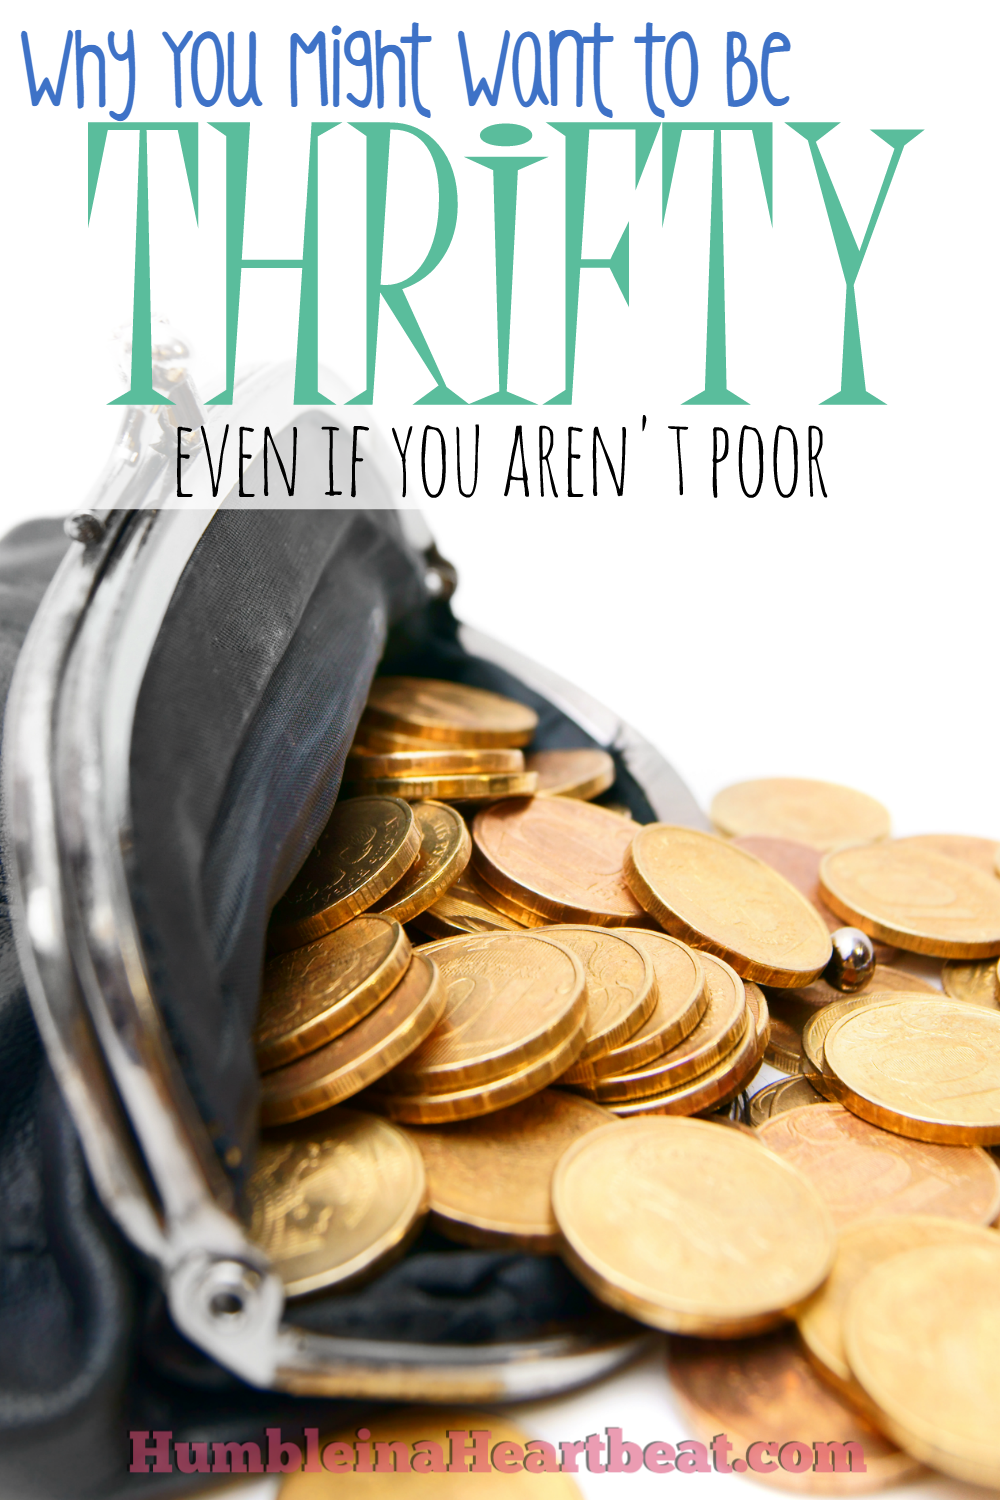 It's a common misconception that thrifty people are poor and need to be this way to make ends meet. But everyone should be a little thrifty now and then for a number of legitimate reasons.